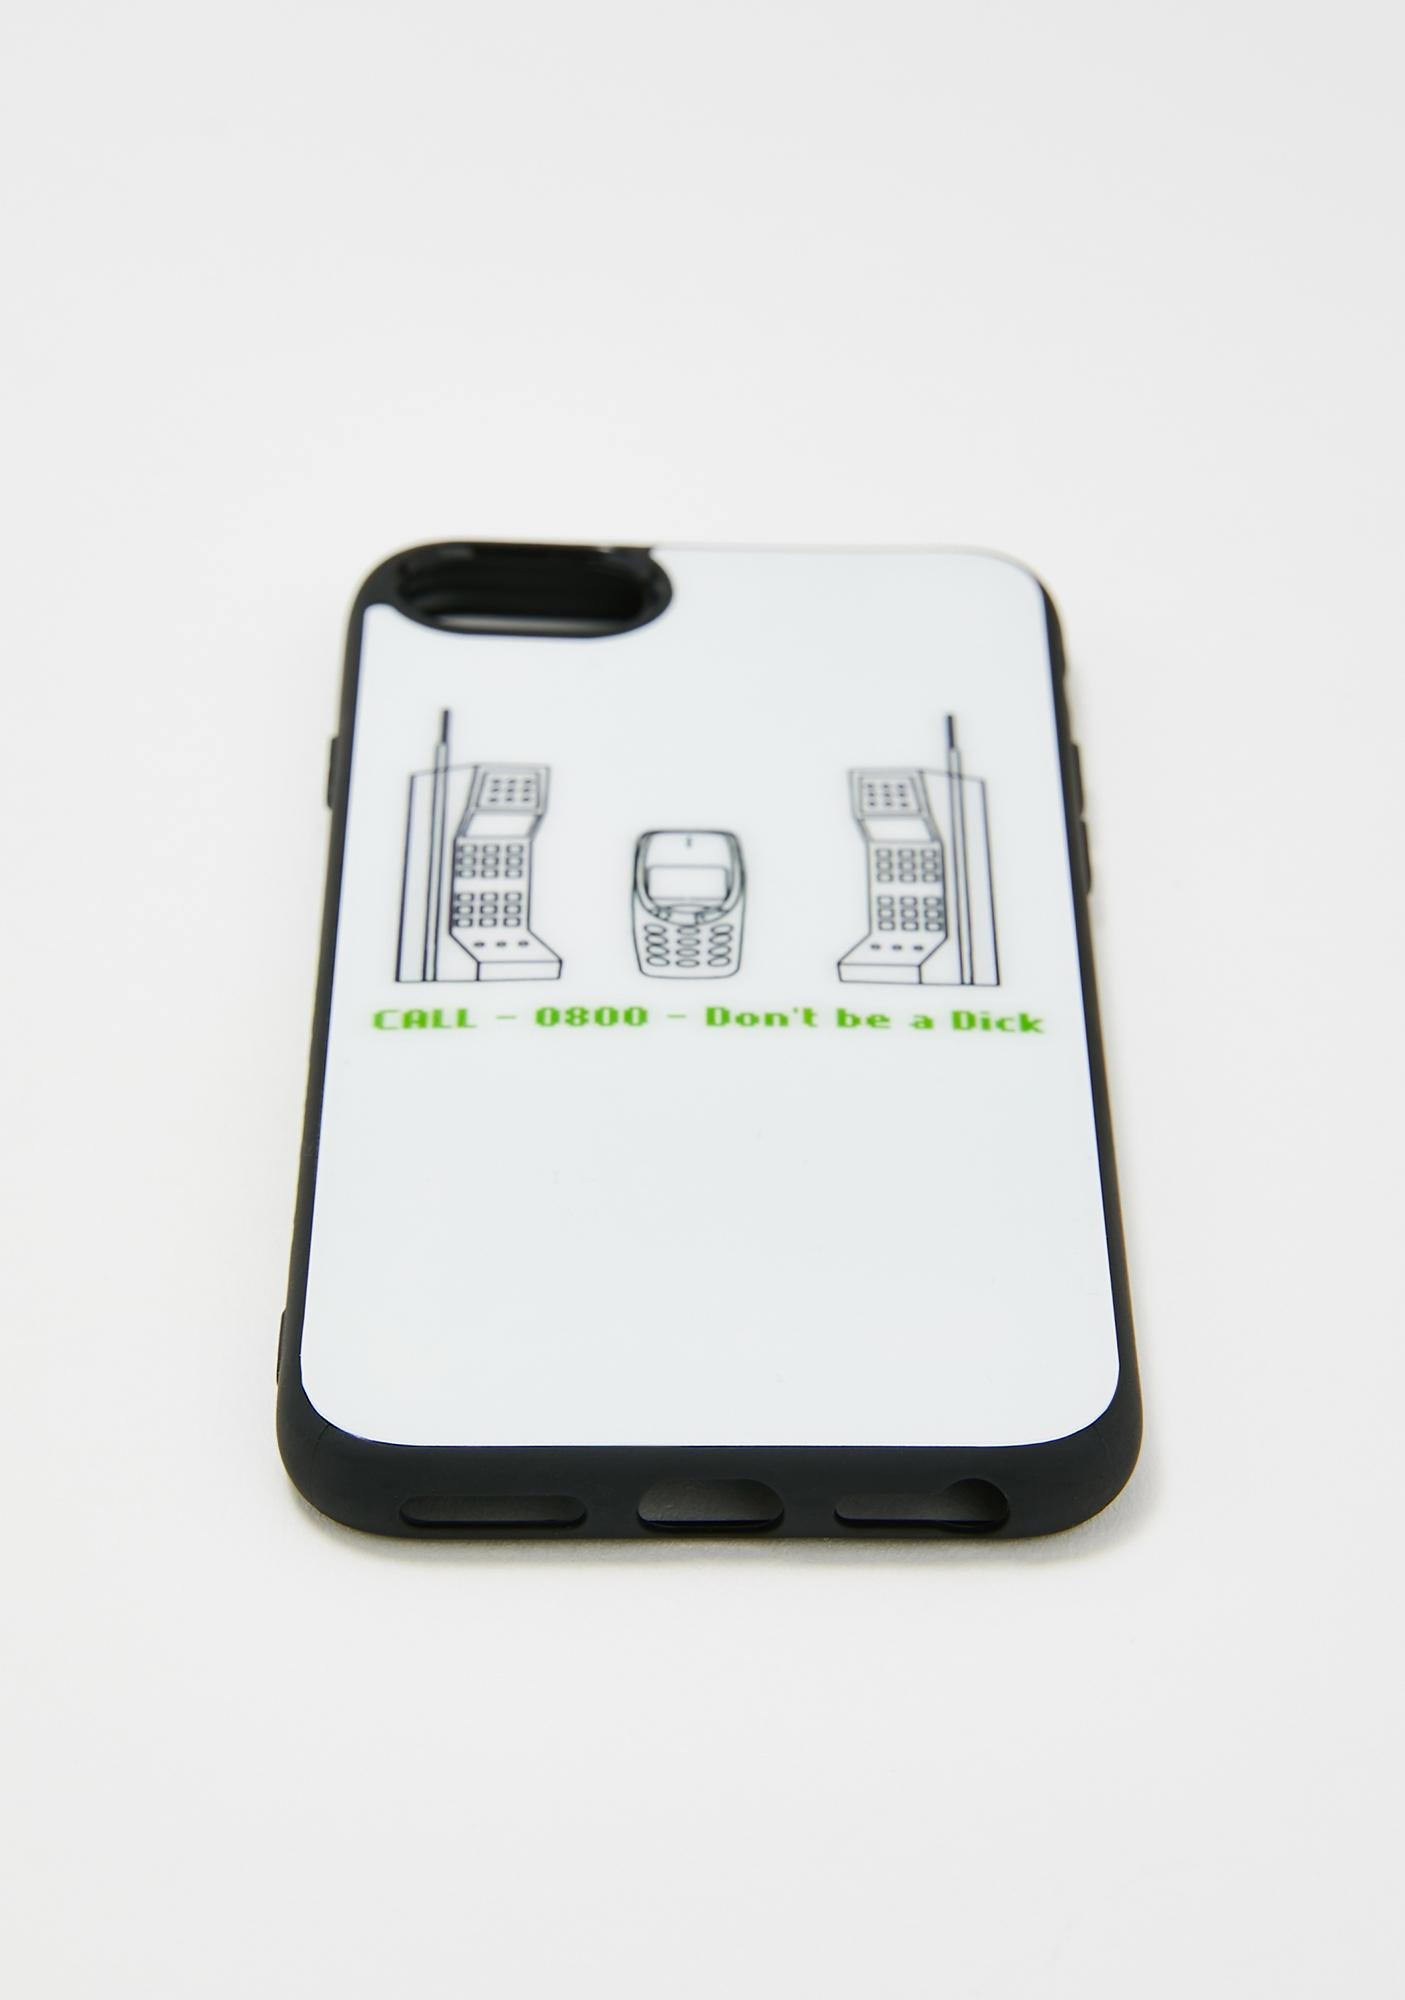 Spill The Tea 1800 Don't Be A Dick iPhone Case